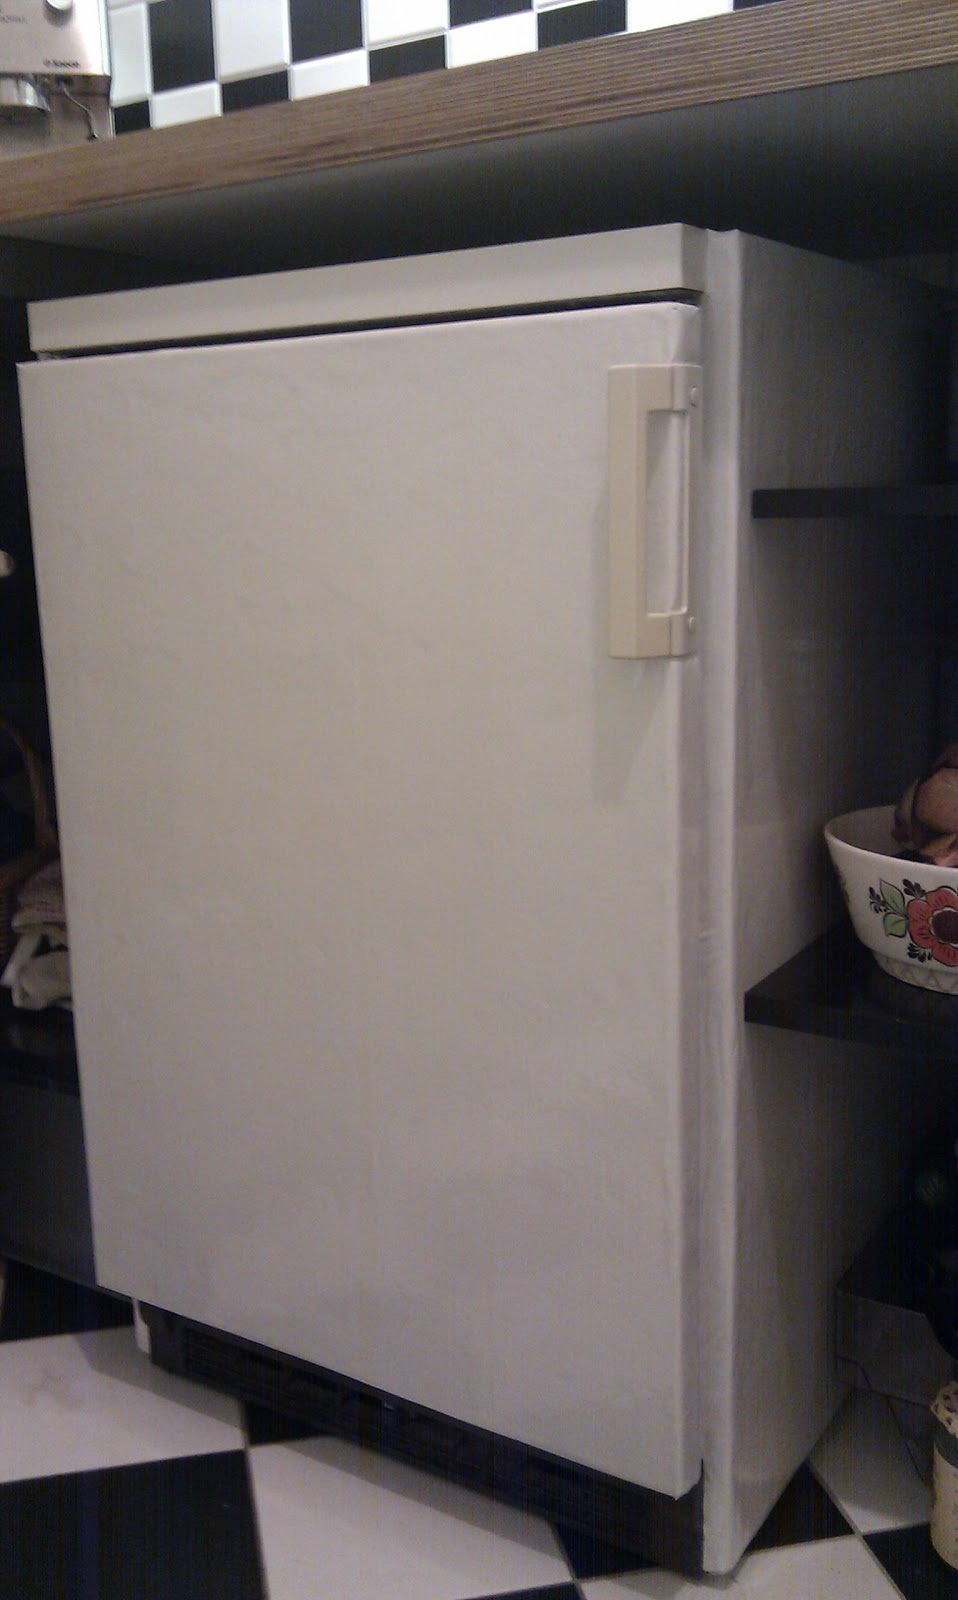 Make Your Old Fridge Green By Insulating It